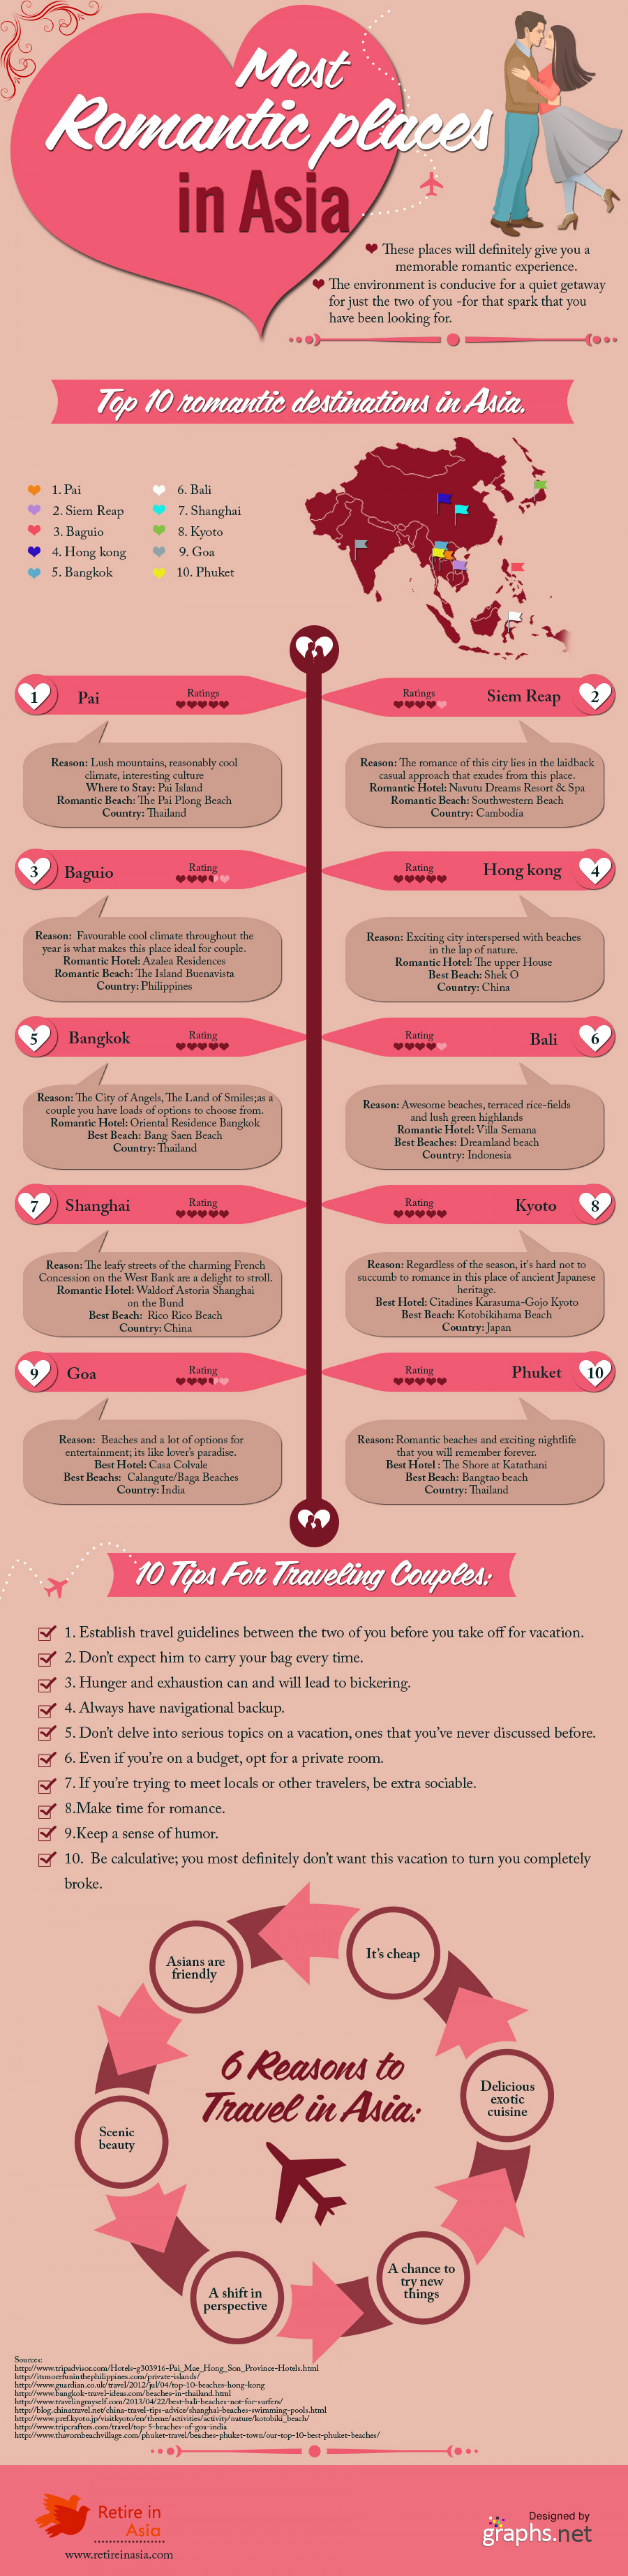 Most Romantic Places in Asia  Infographic